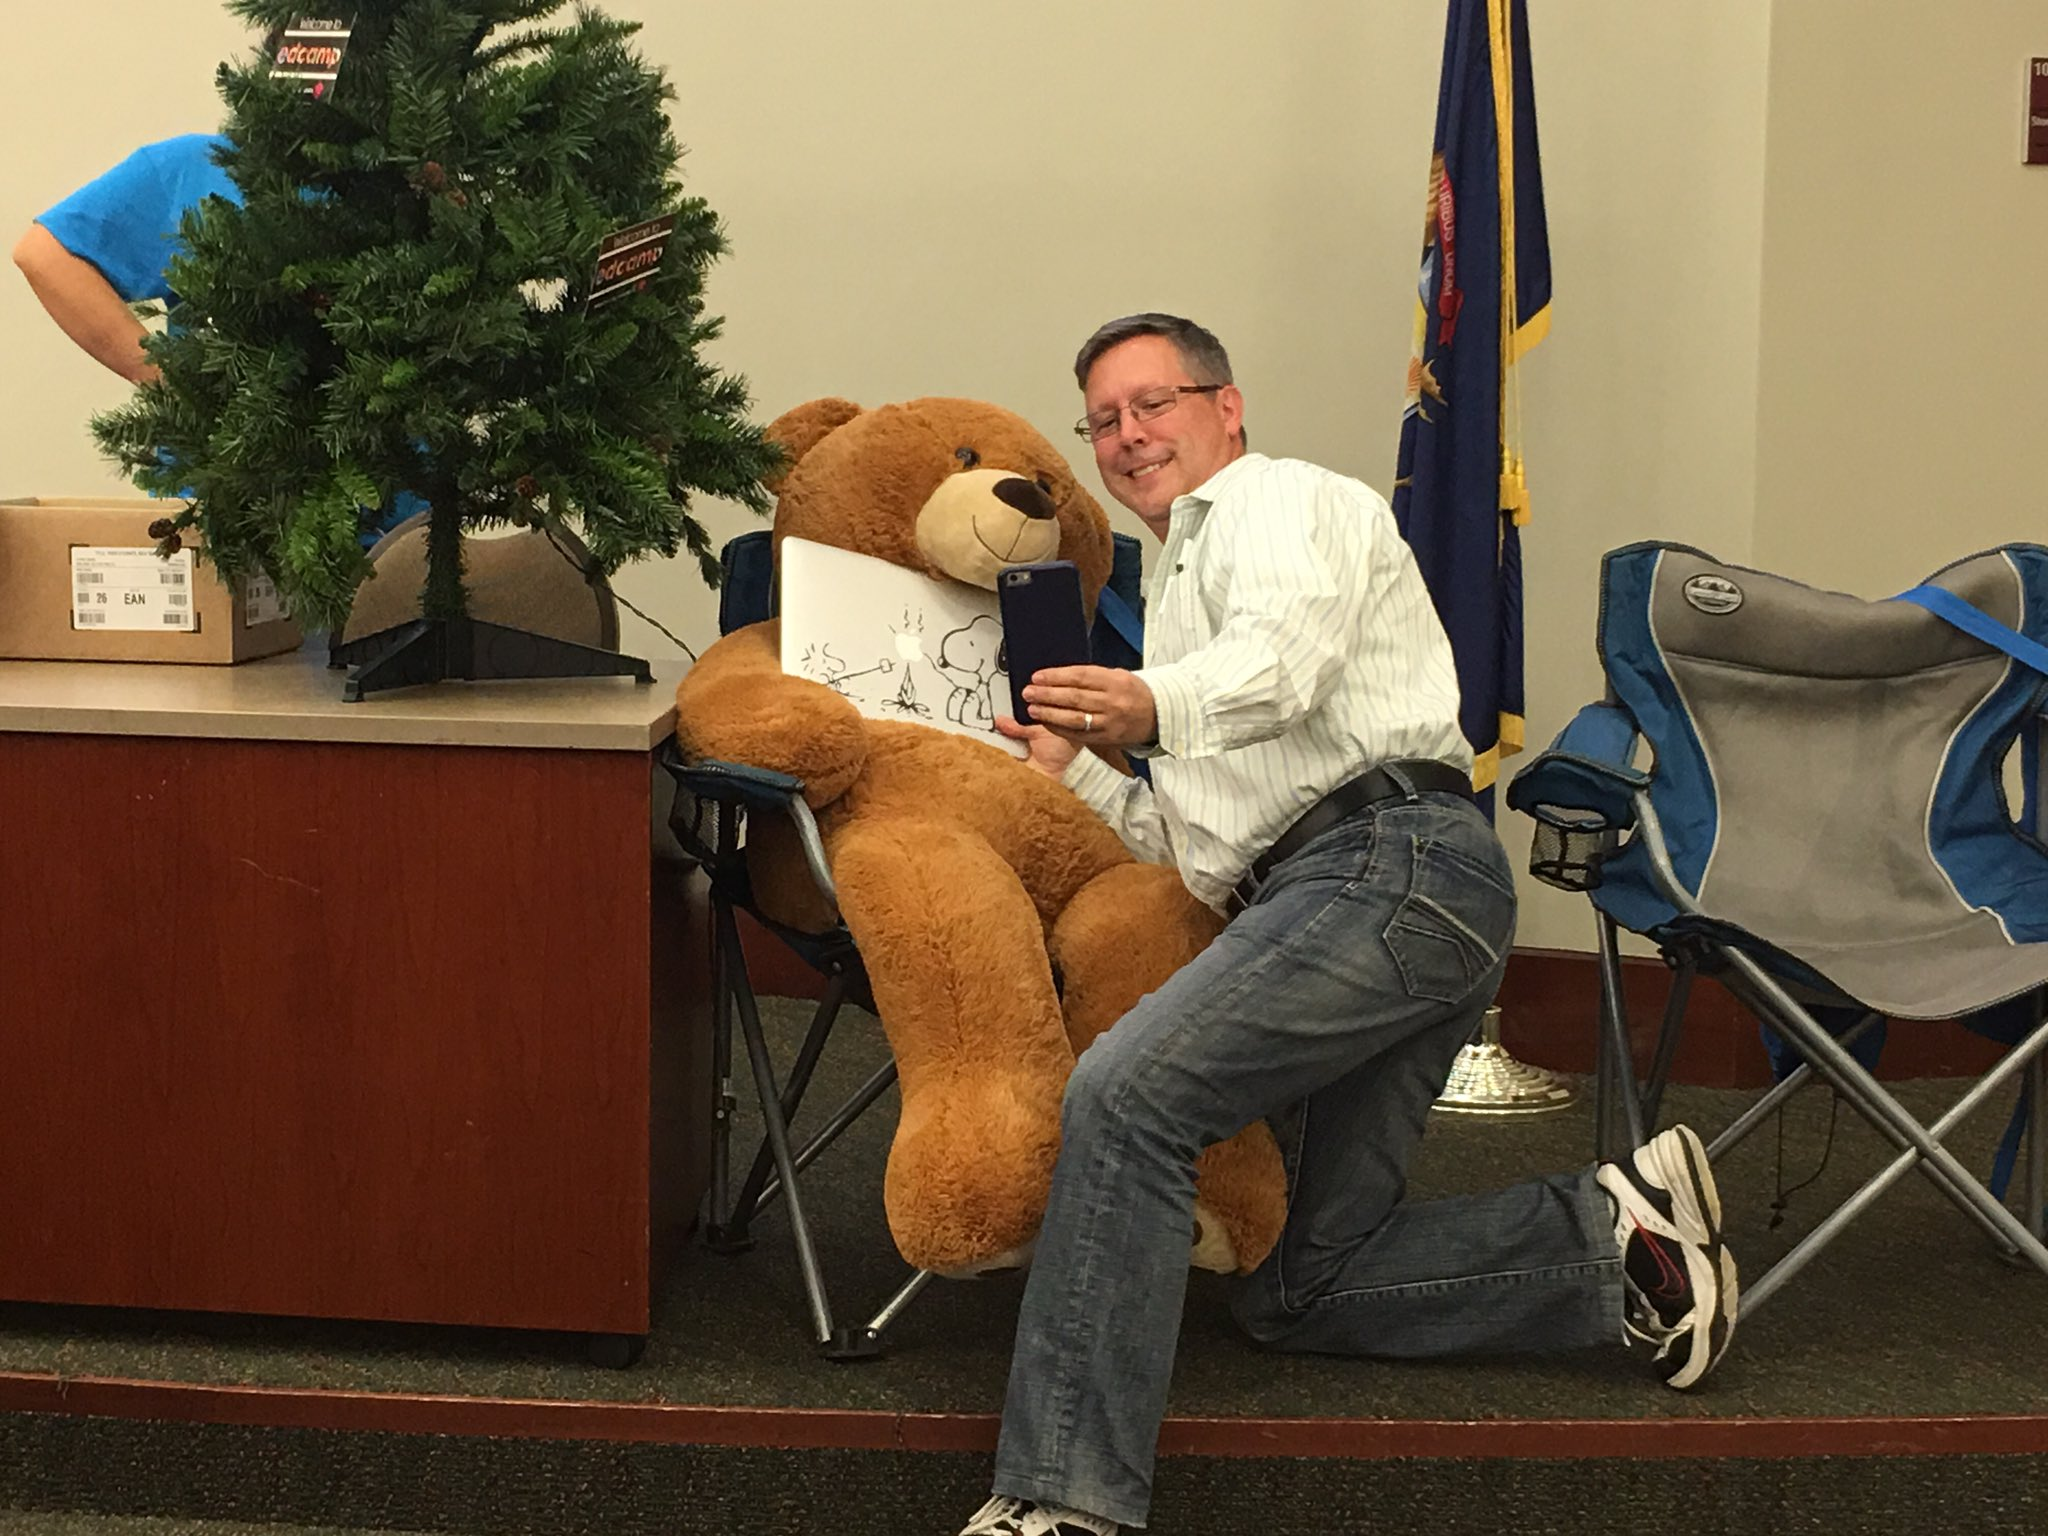 Everyone wants a selfie with our Camp Bear at #edcampmdlc @trmartin101t https://t.co/ABTIN0PE8m